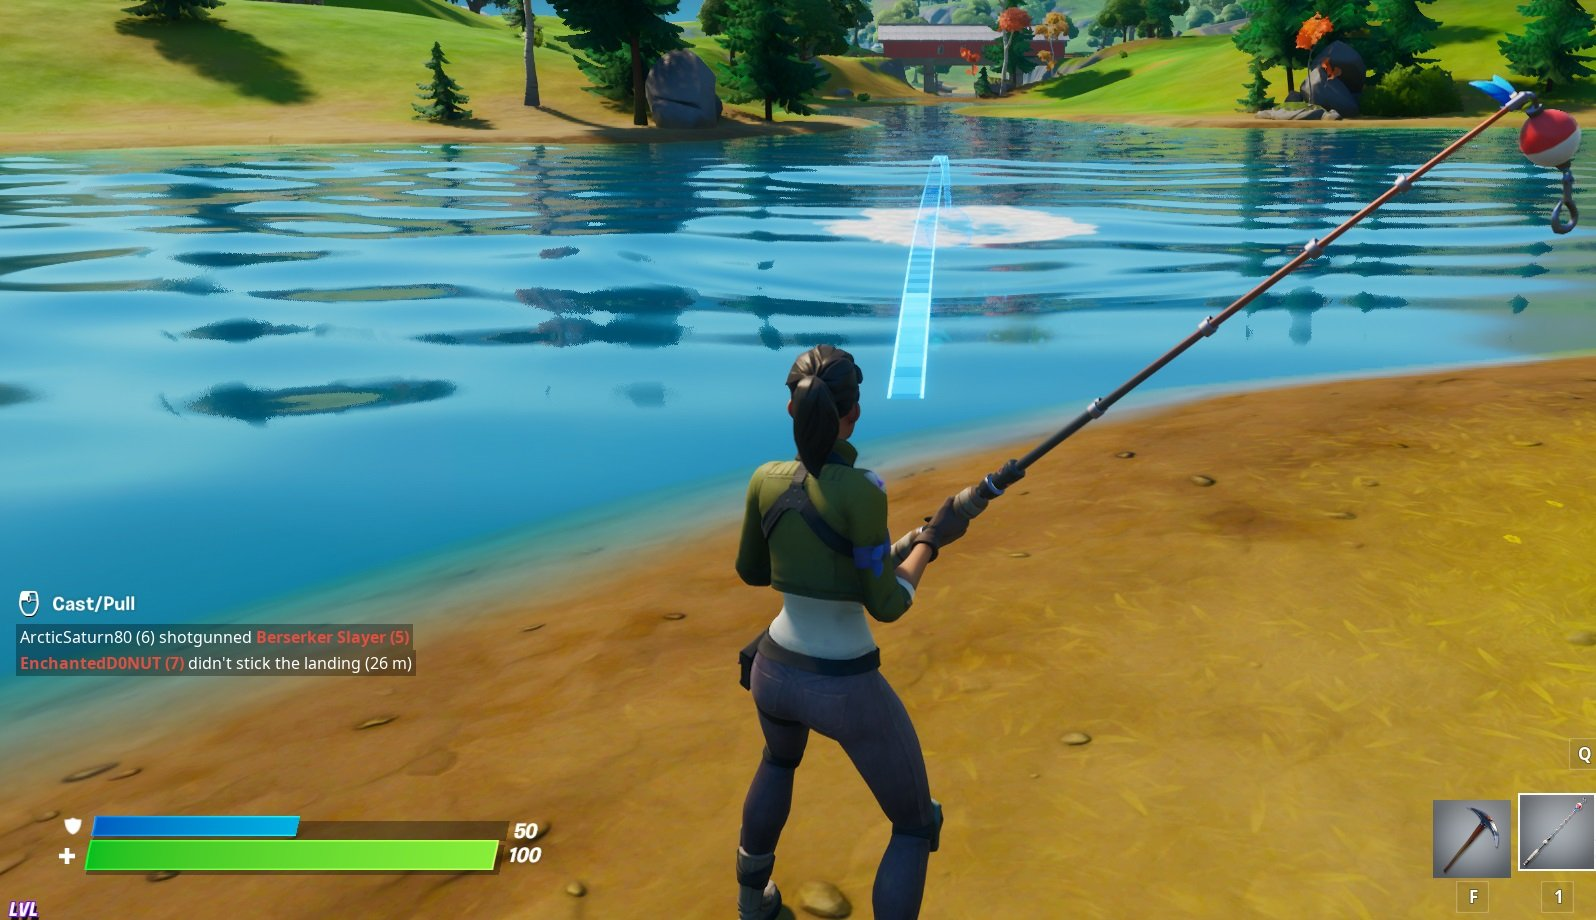 Cast your Fishing Rod line in Fortnite Chapter 2 using RT on Xbox One, R2 on PS4, or Left-Click on PC. You can hold to see where the line is going to land in the water.